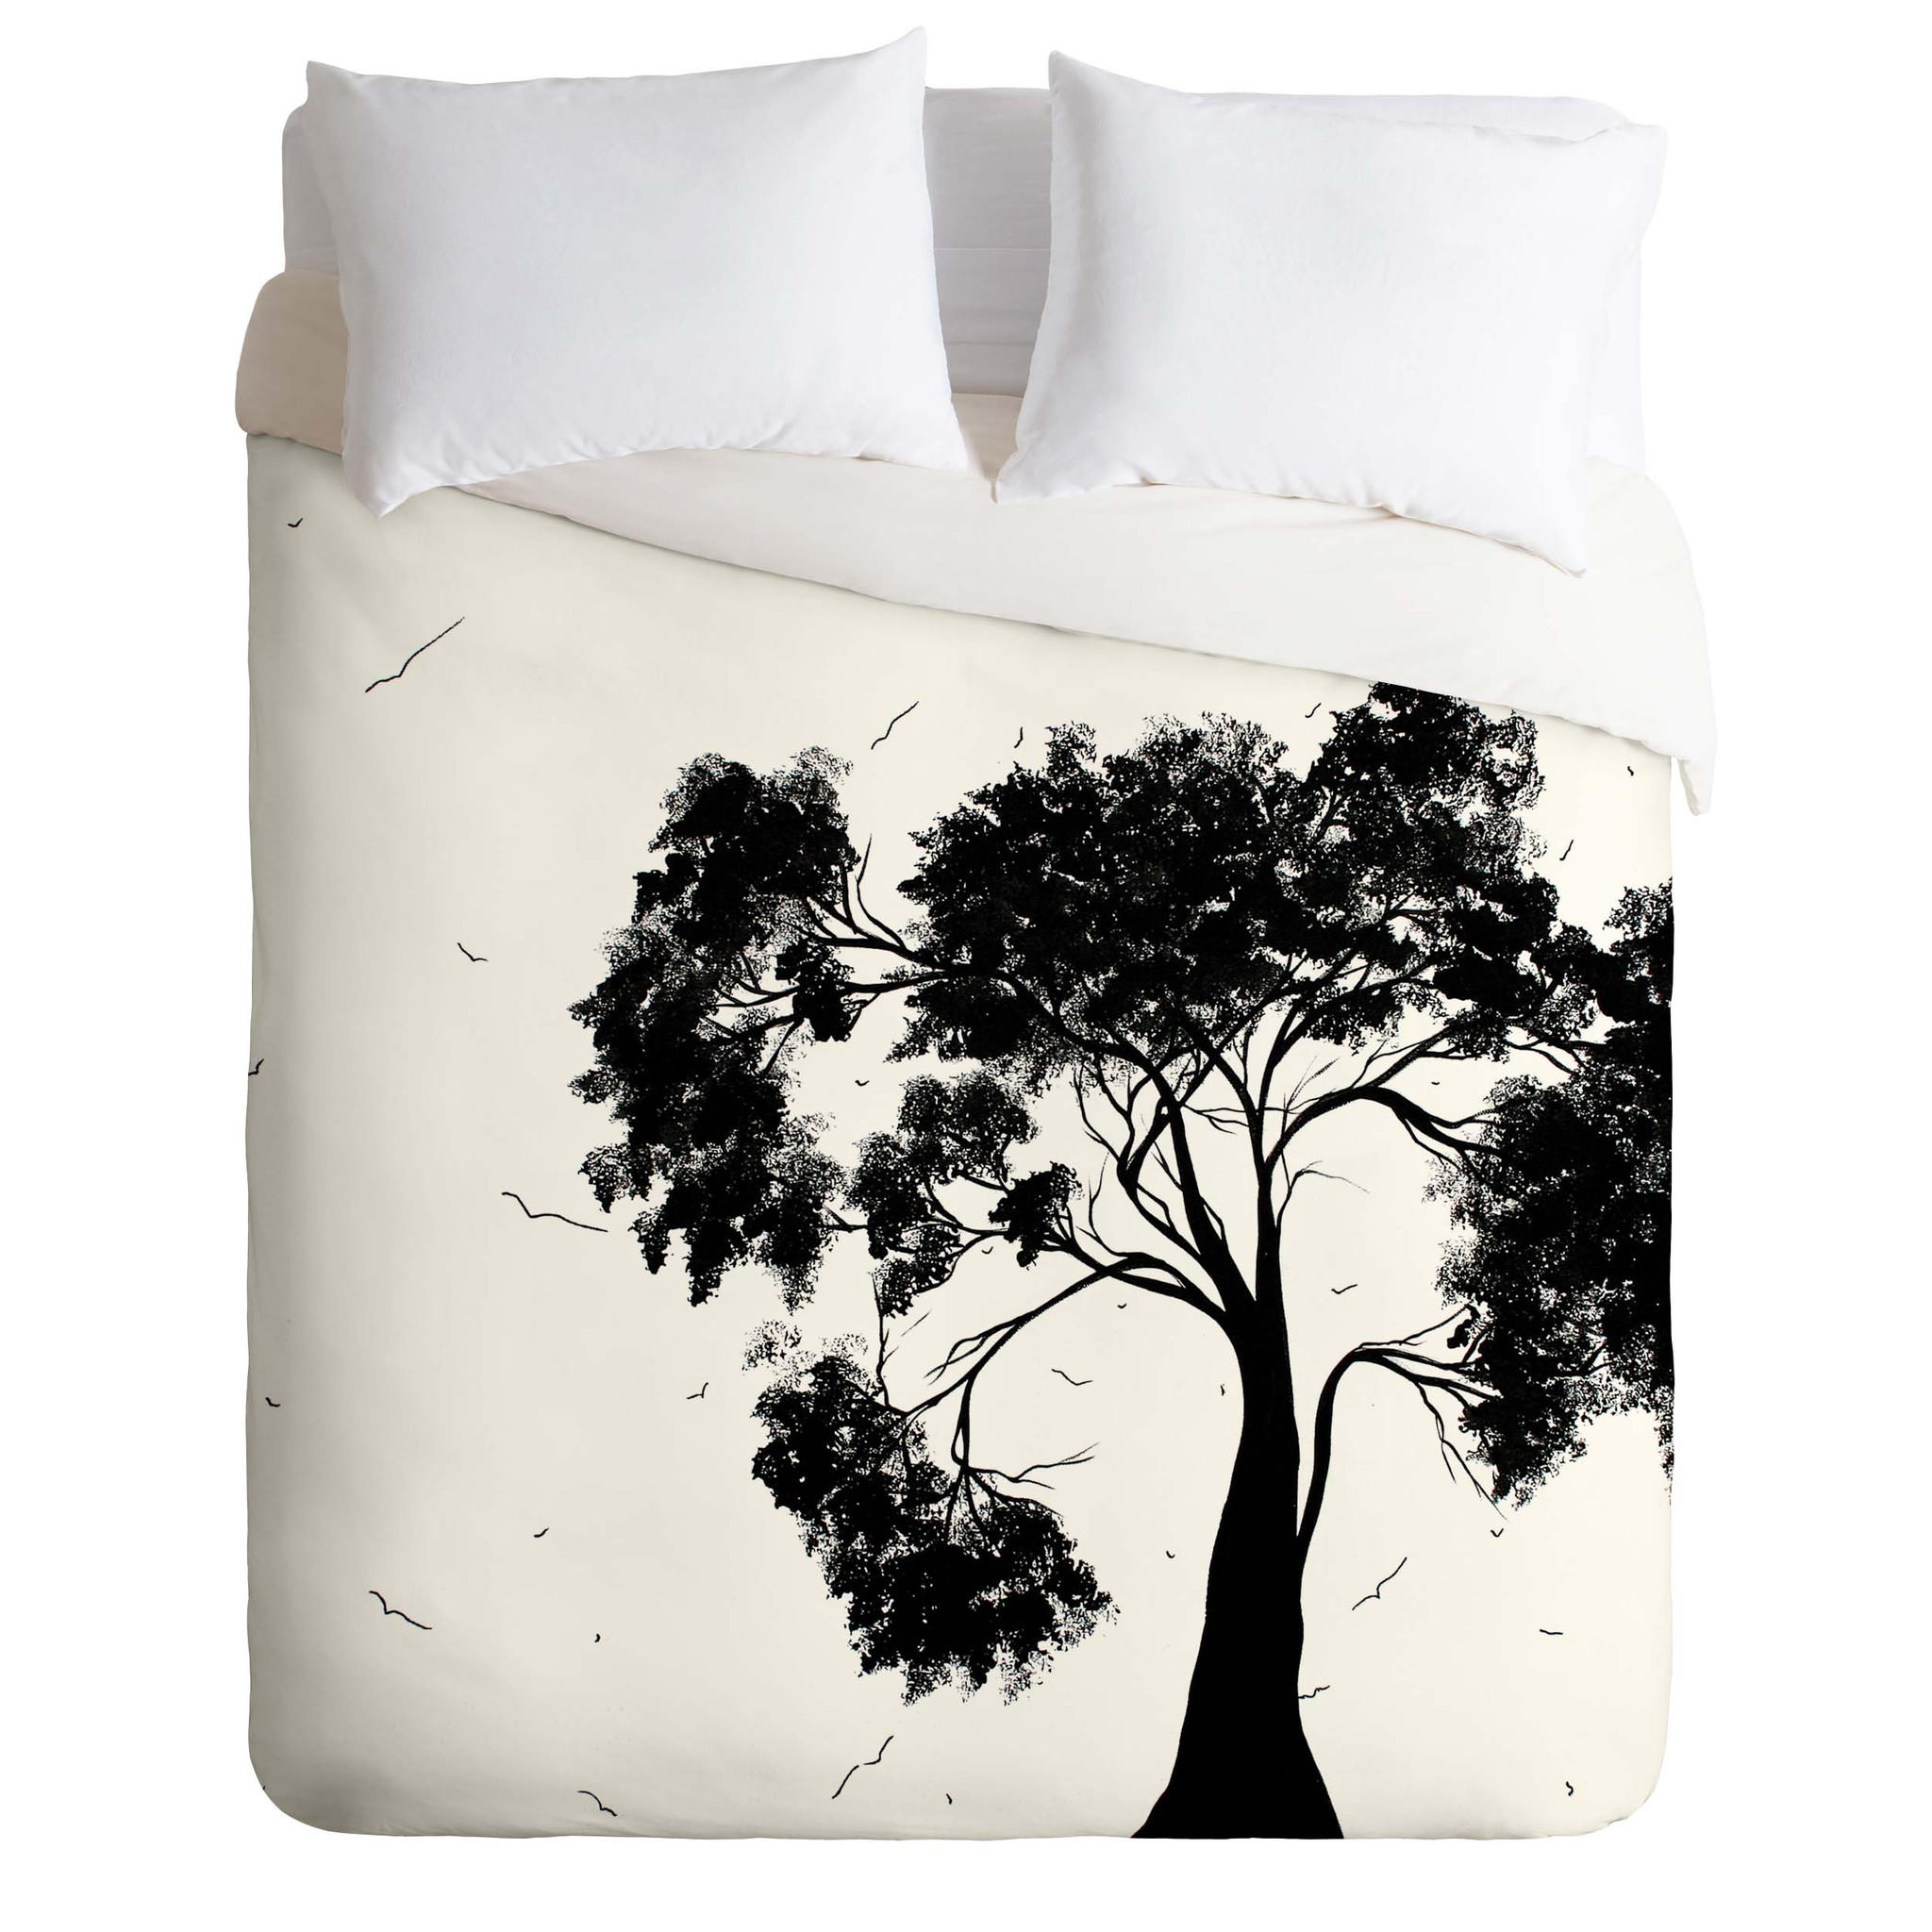 Madart Inc. Modern Designs 3 Duvet Cover